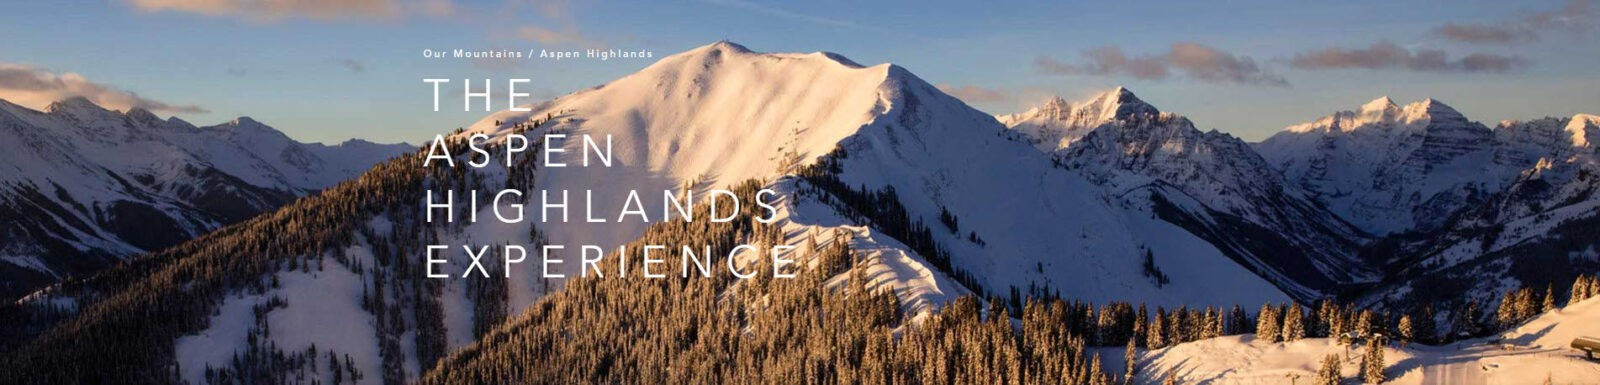 The Aspen Highlands Experience banner image